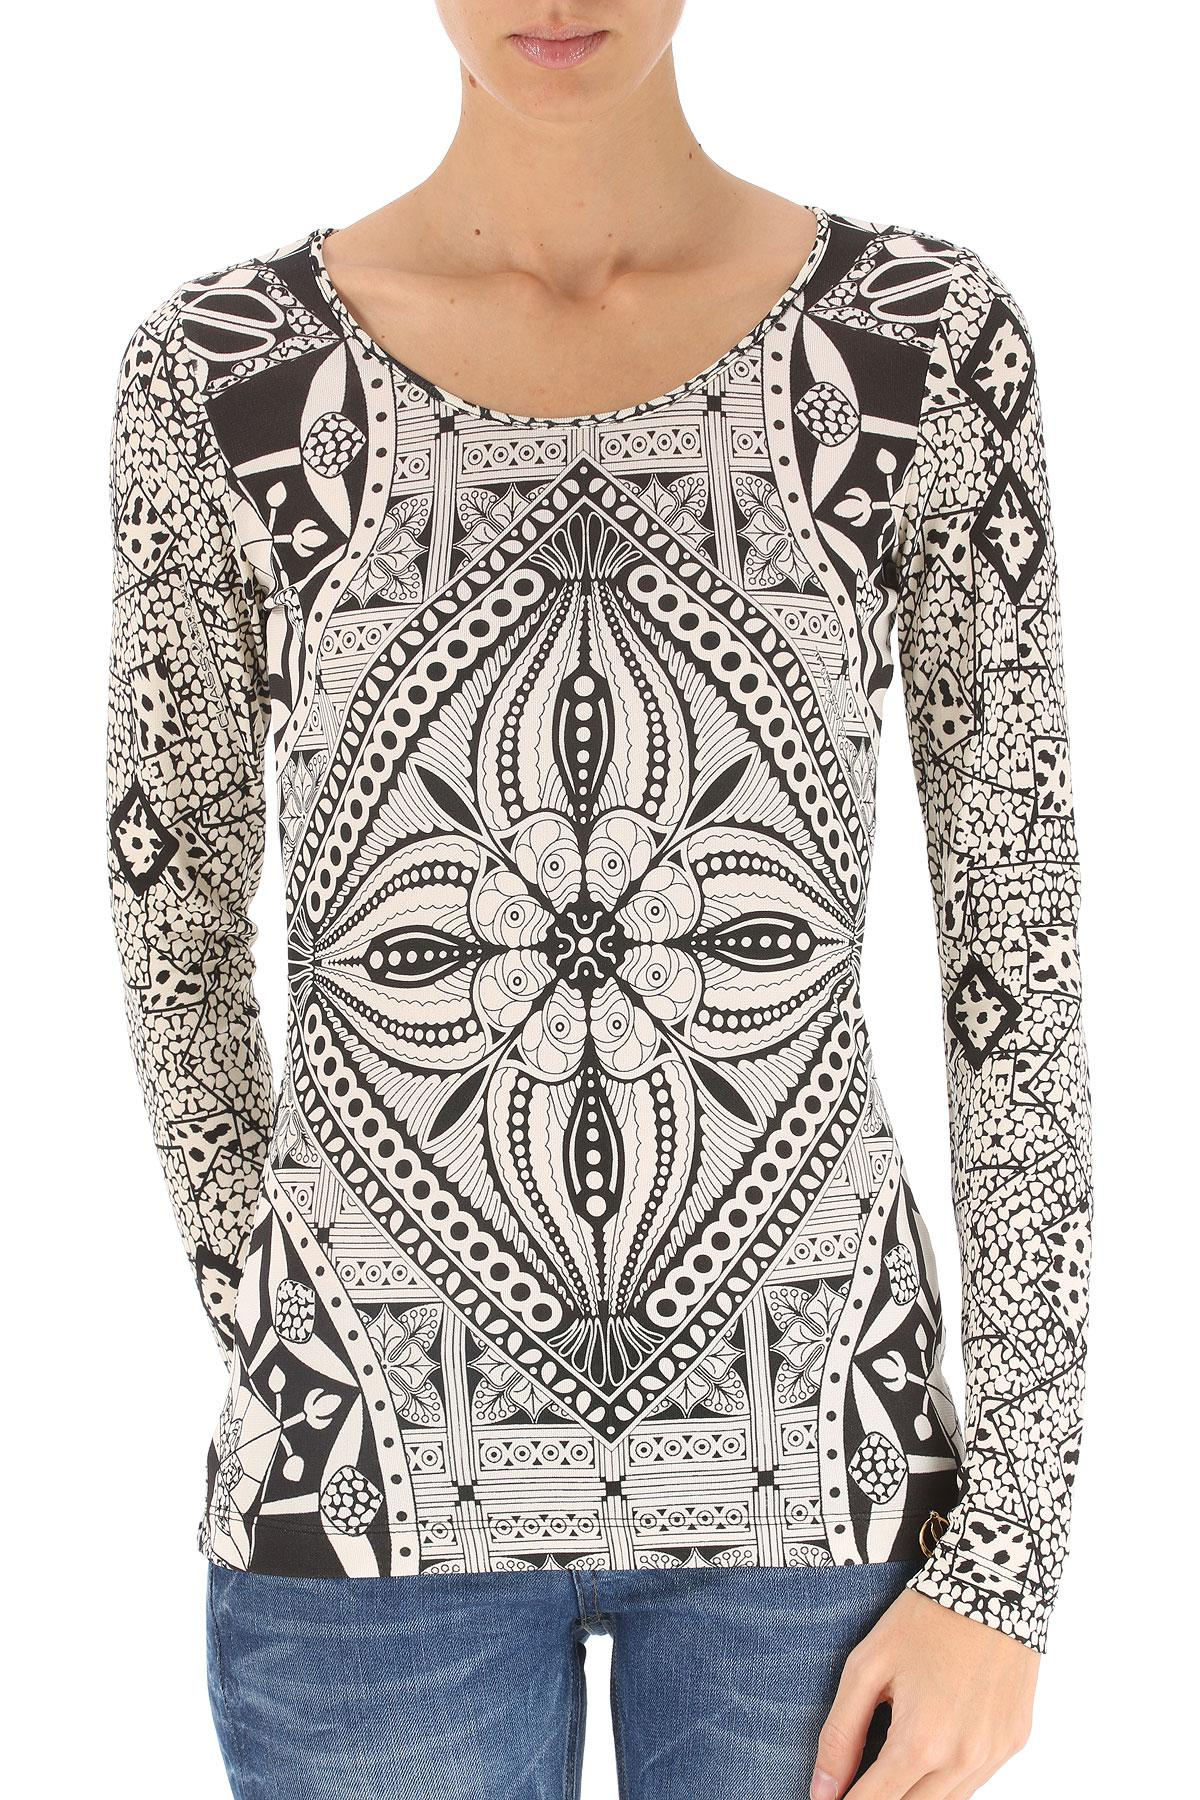 Roberto cavalli clothing for women